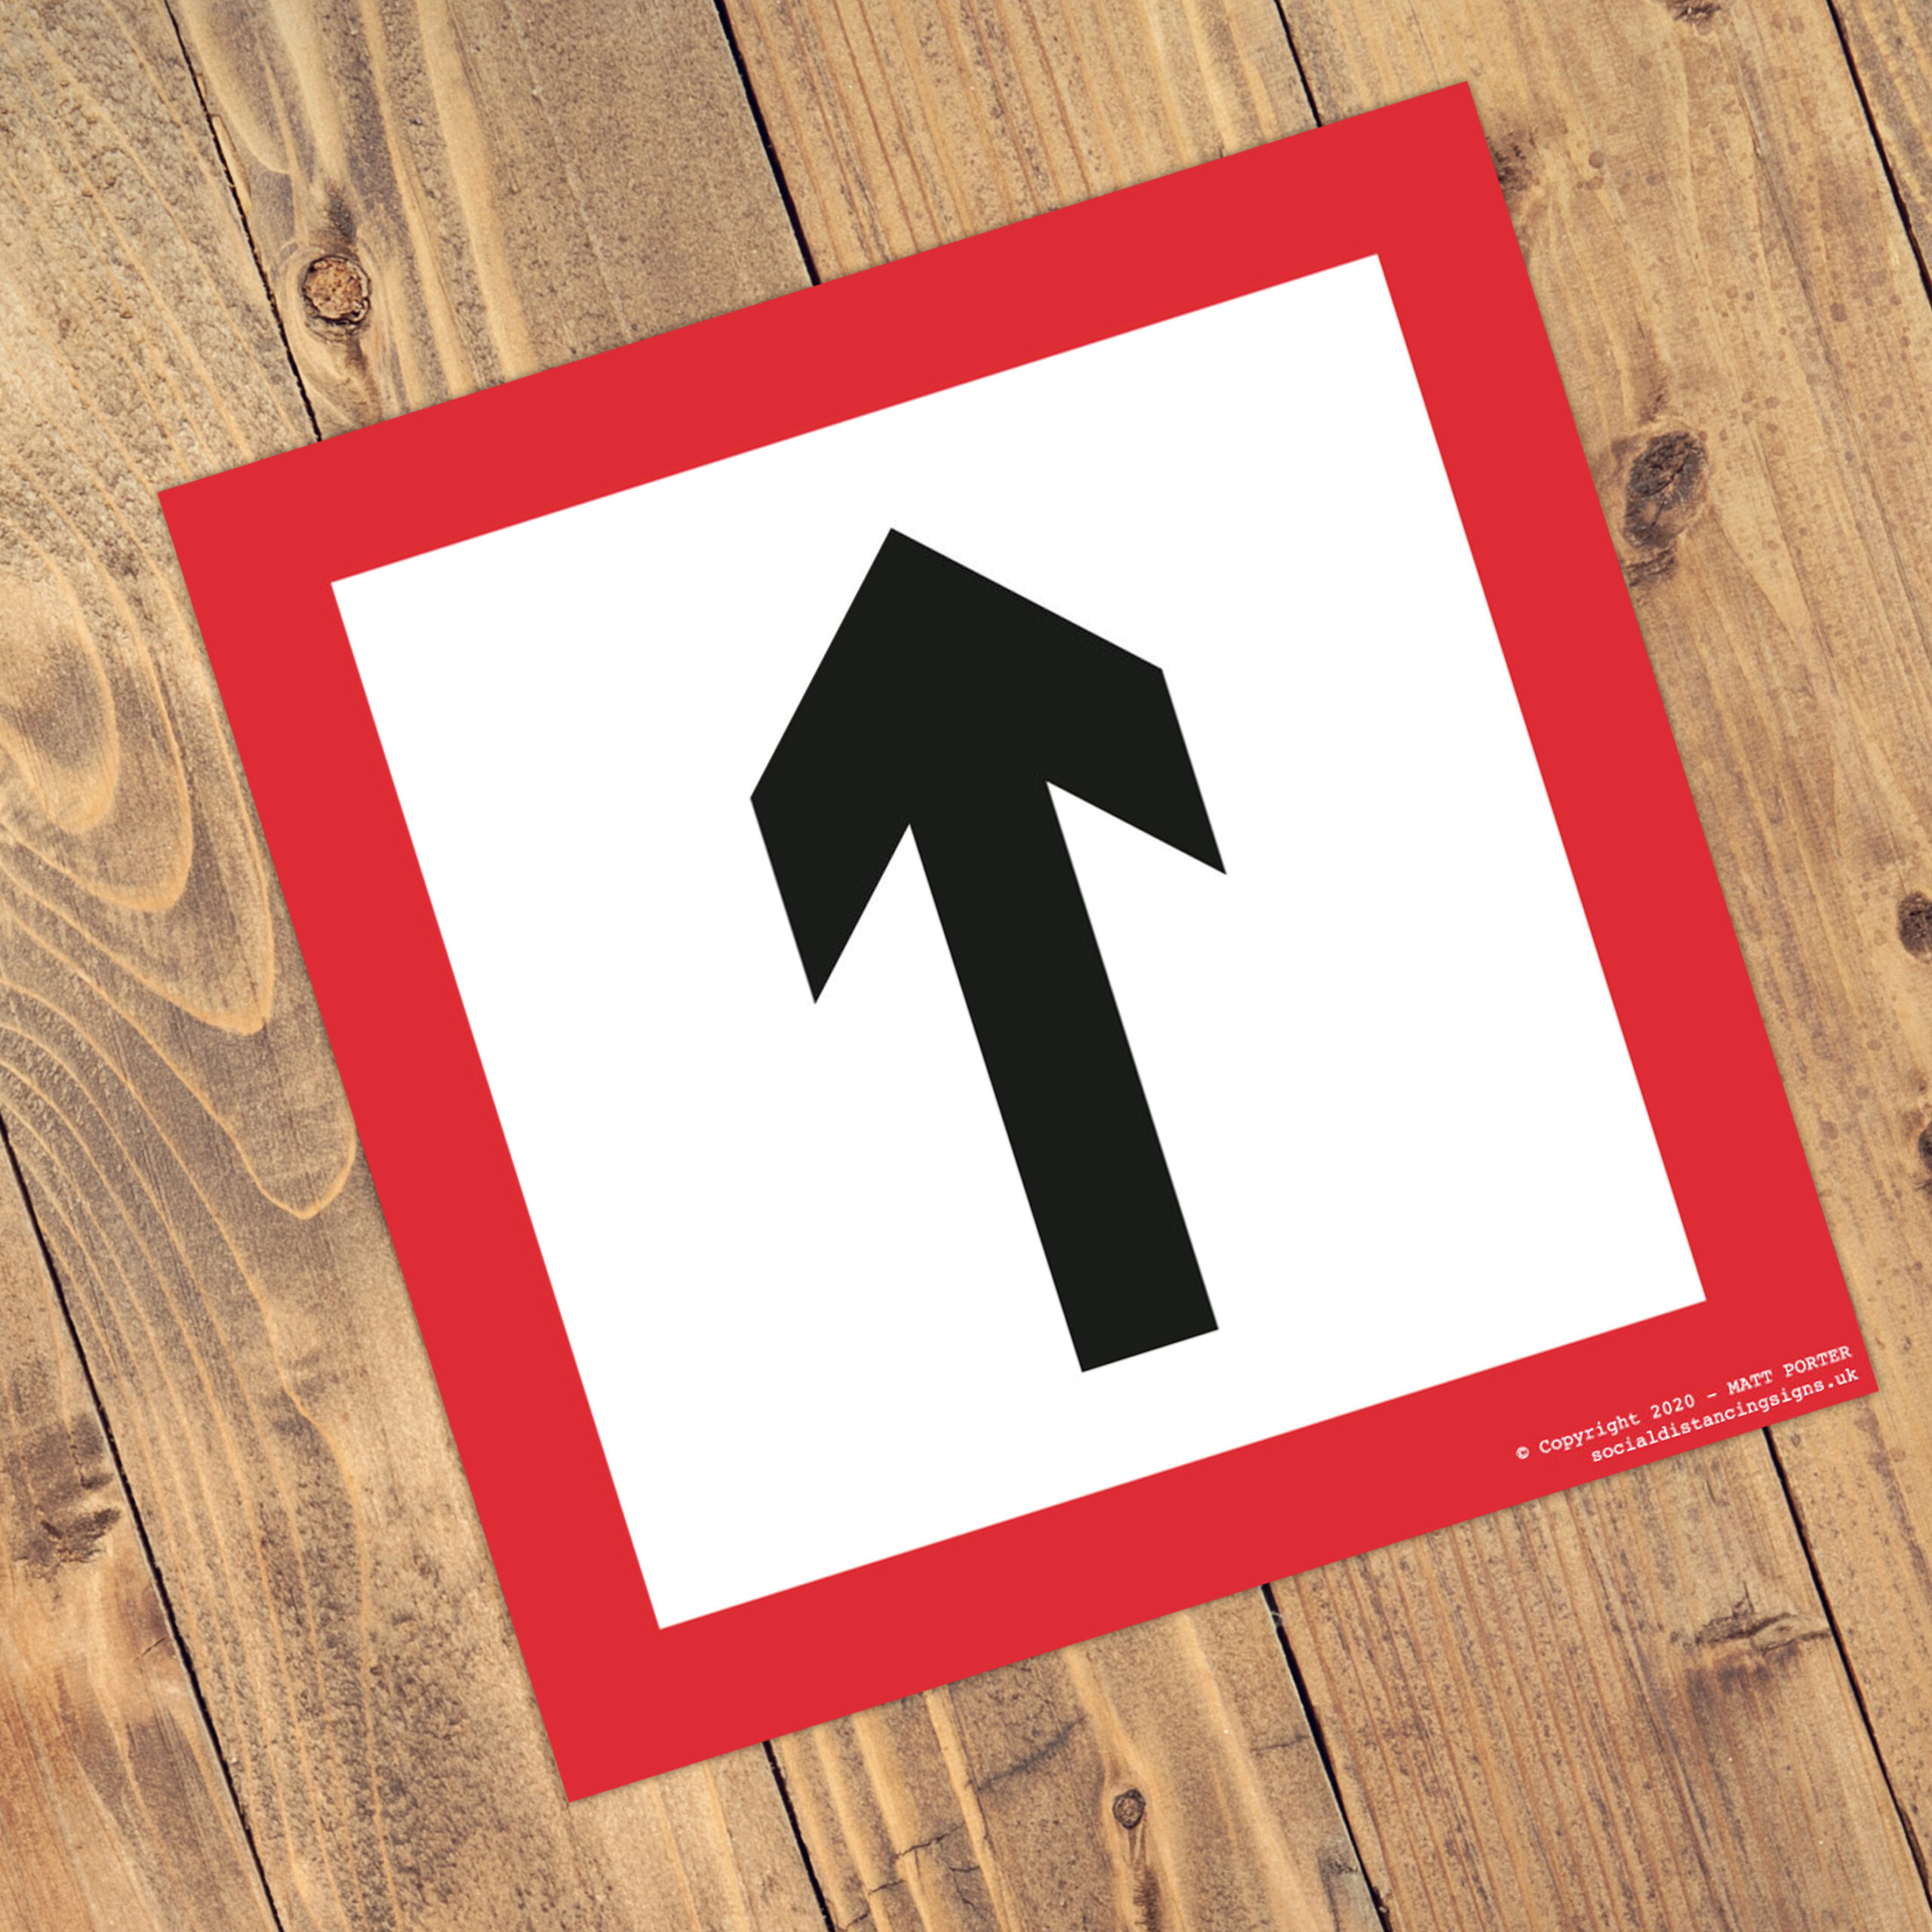 Social Distancing Square Anti-Slip Floor Arrow Stickers (300mm x 300mm)